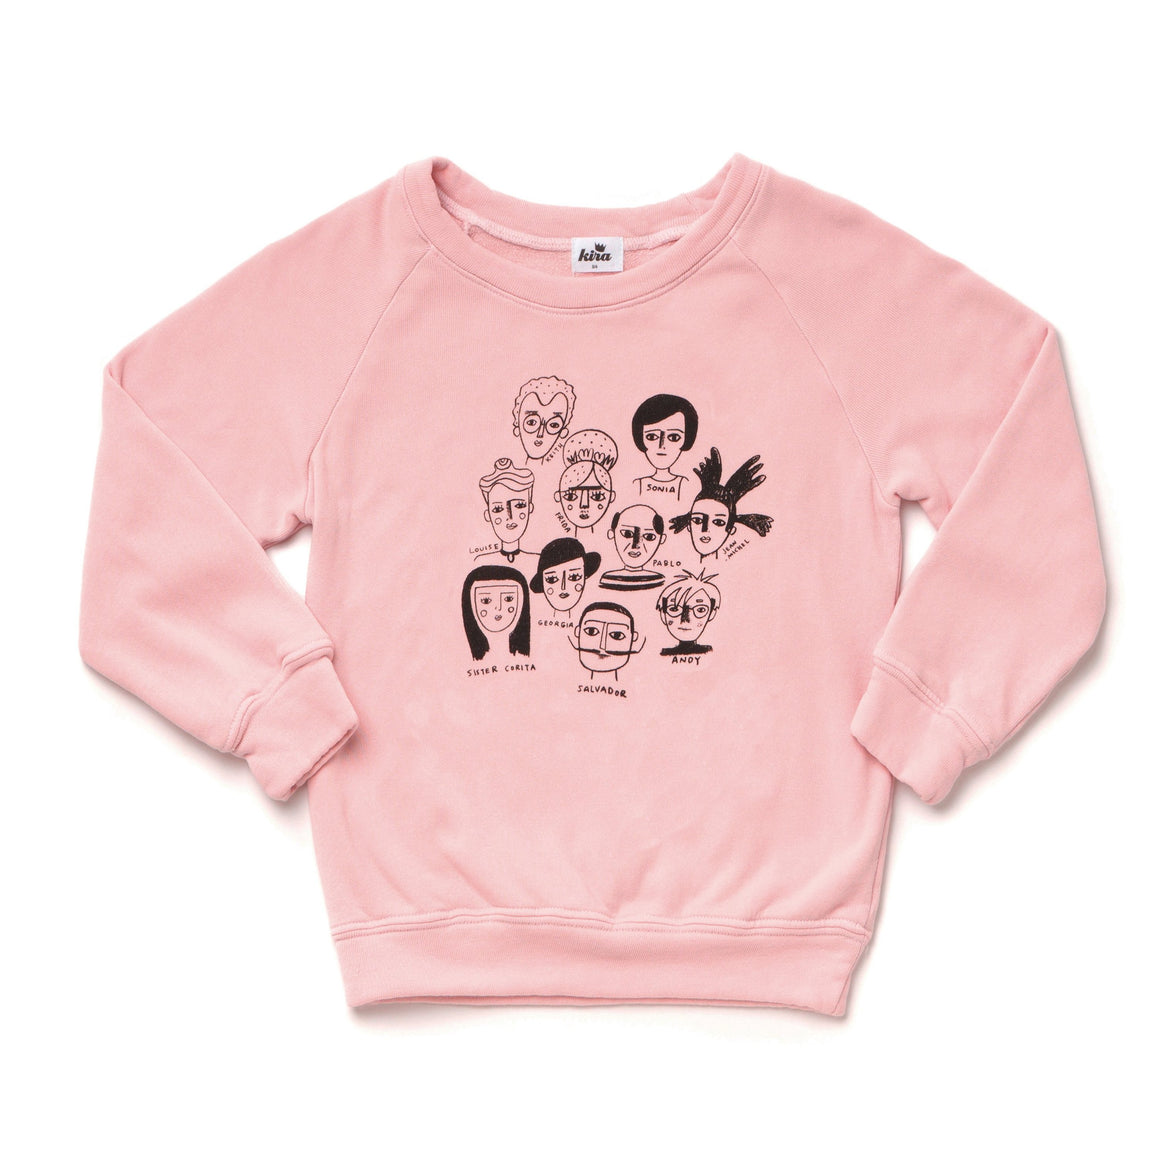 Adult Artists in History Graphic Raglan Sweatshirt, Blush